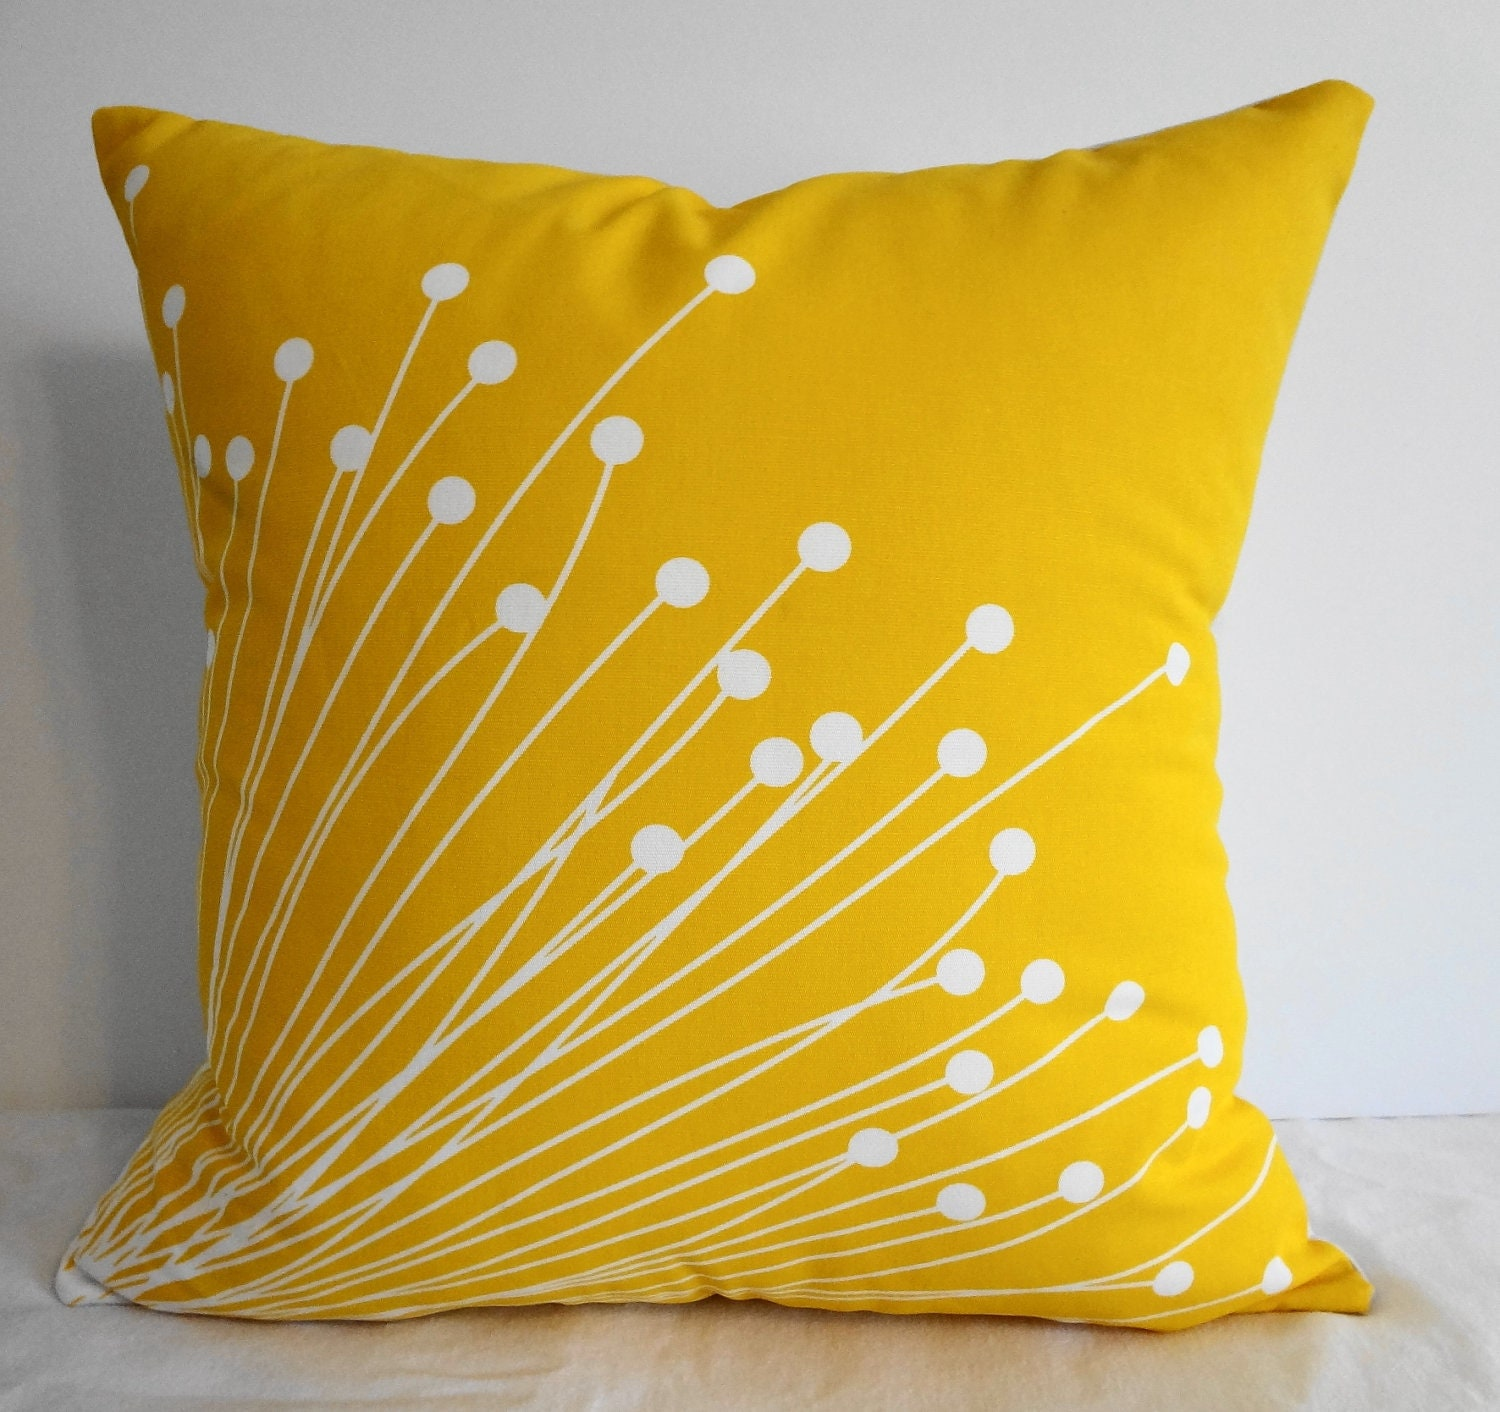 Decorative Pillow Yellow : Starburst Yellow Pillow Covers Decorative Throw Pillow